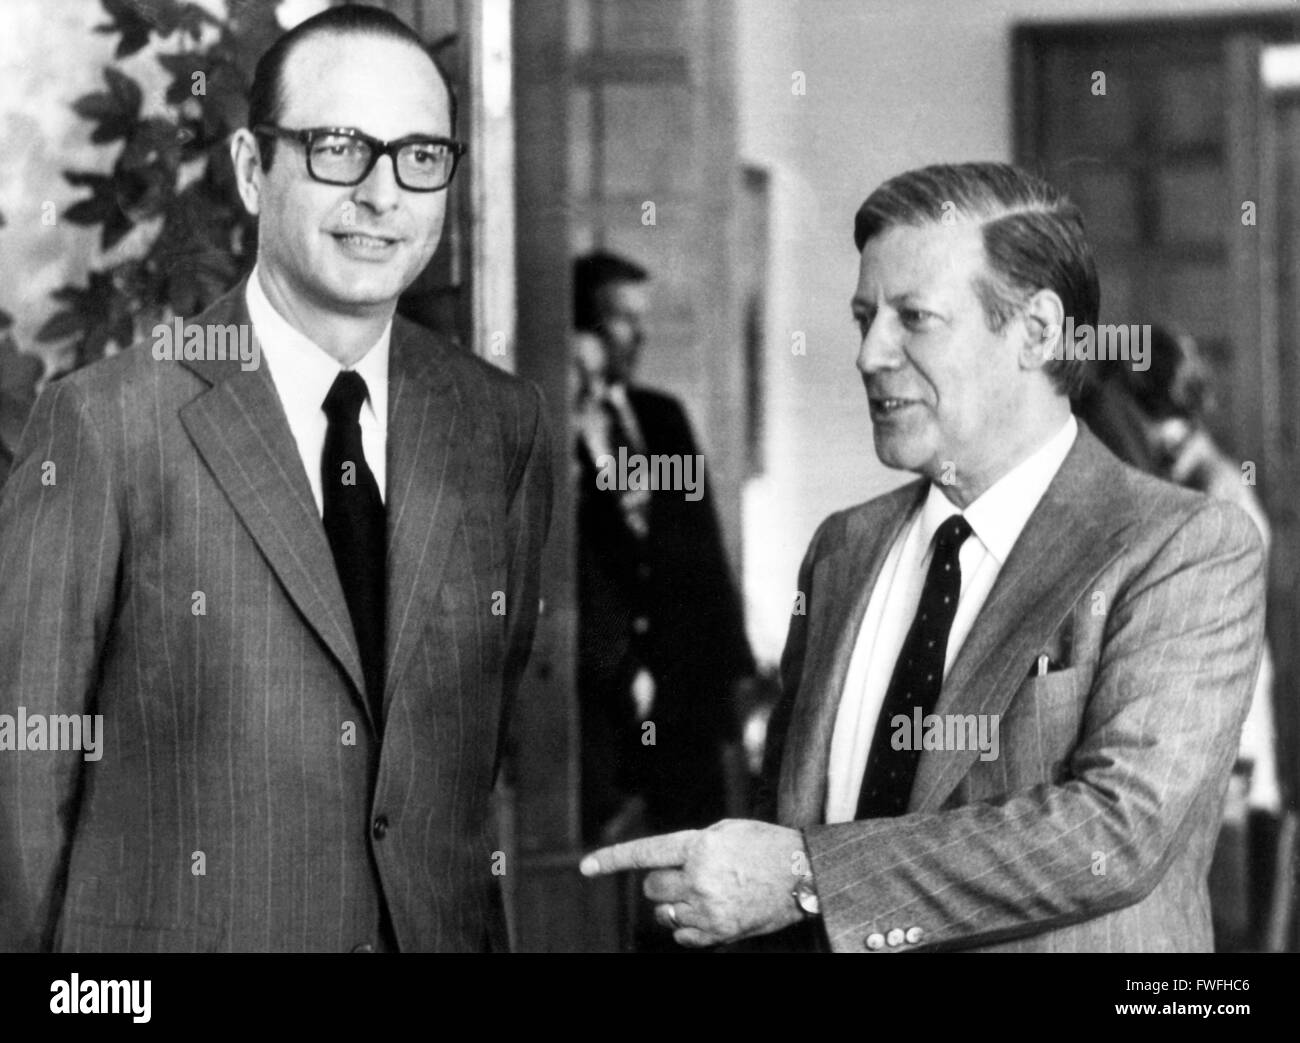 French prime minister Jacques Chirac (l) and German chancellor Helmut Schmidt (r) on 9 August 1974 in Bonn - German - Stock Image